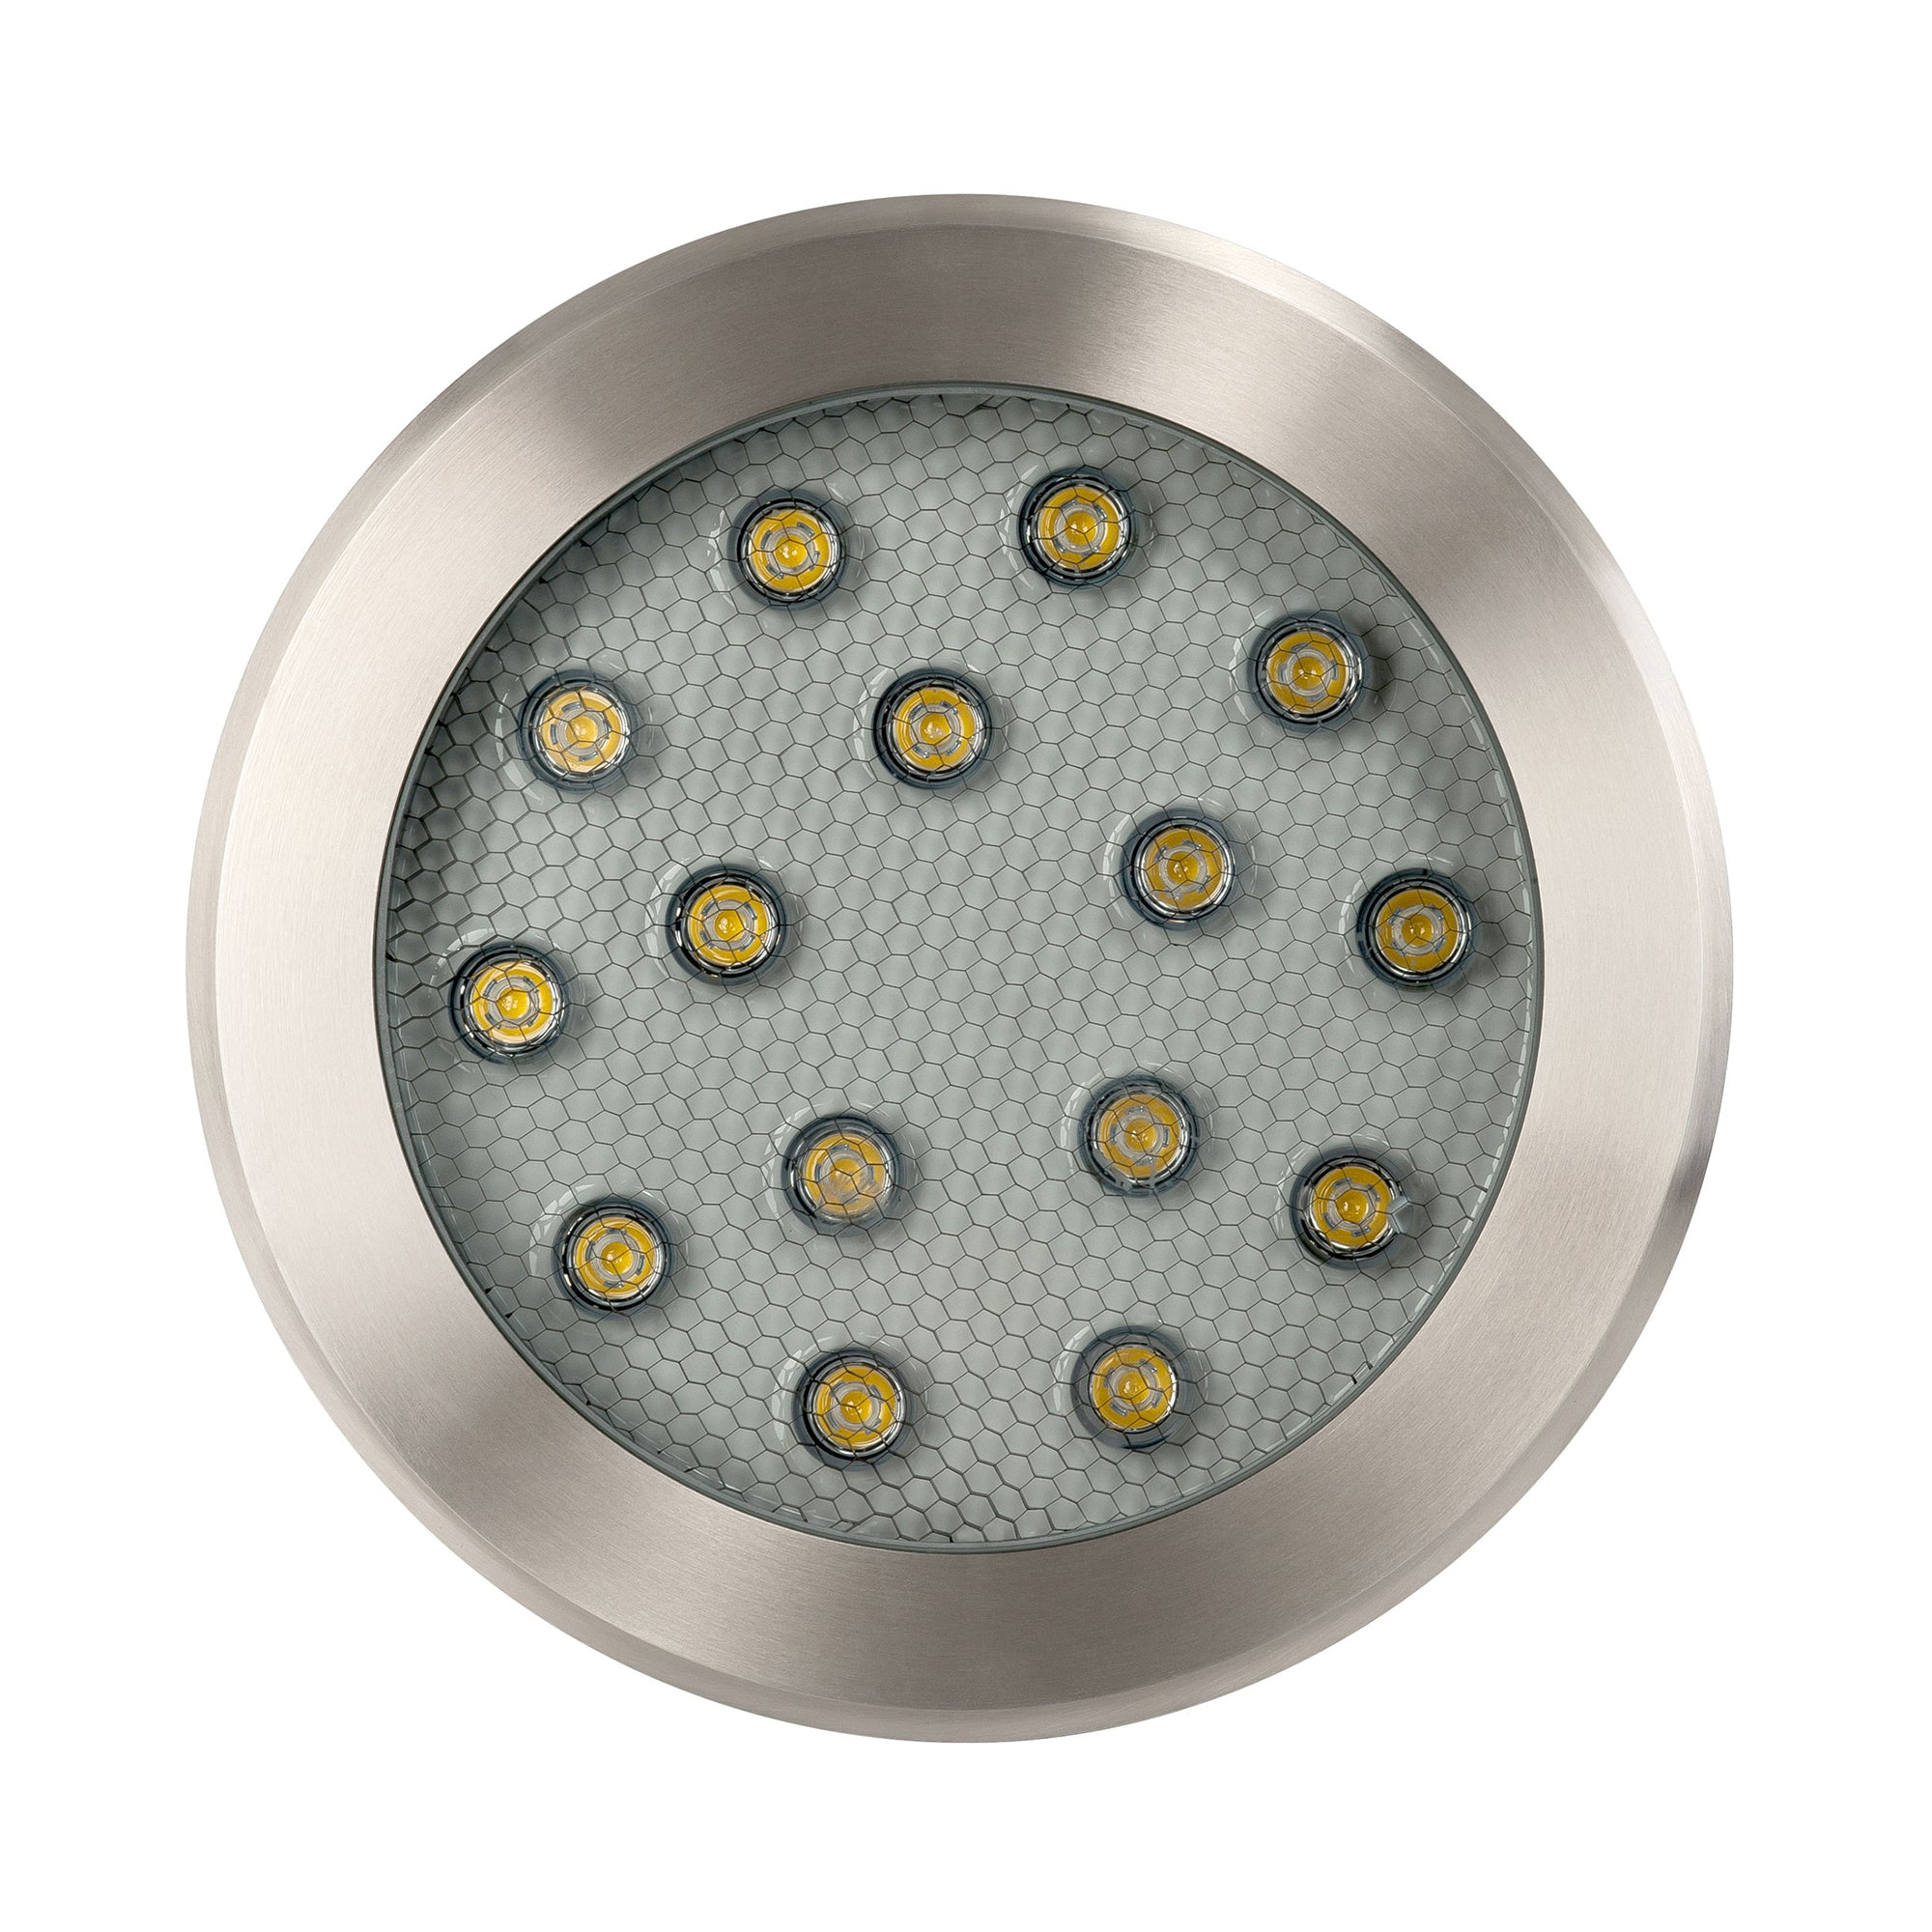 HV1845 - Split 316 Stainless Steel 18w LED Inground Light